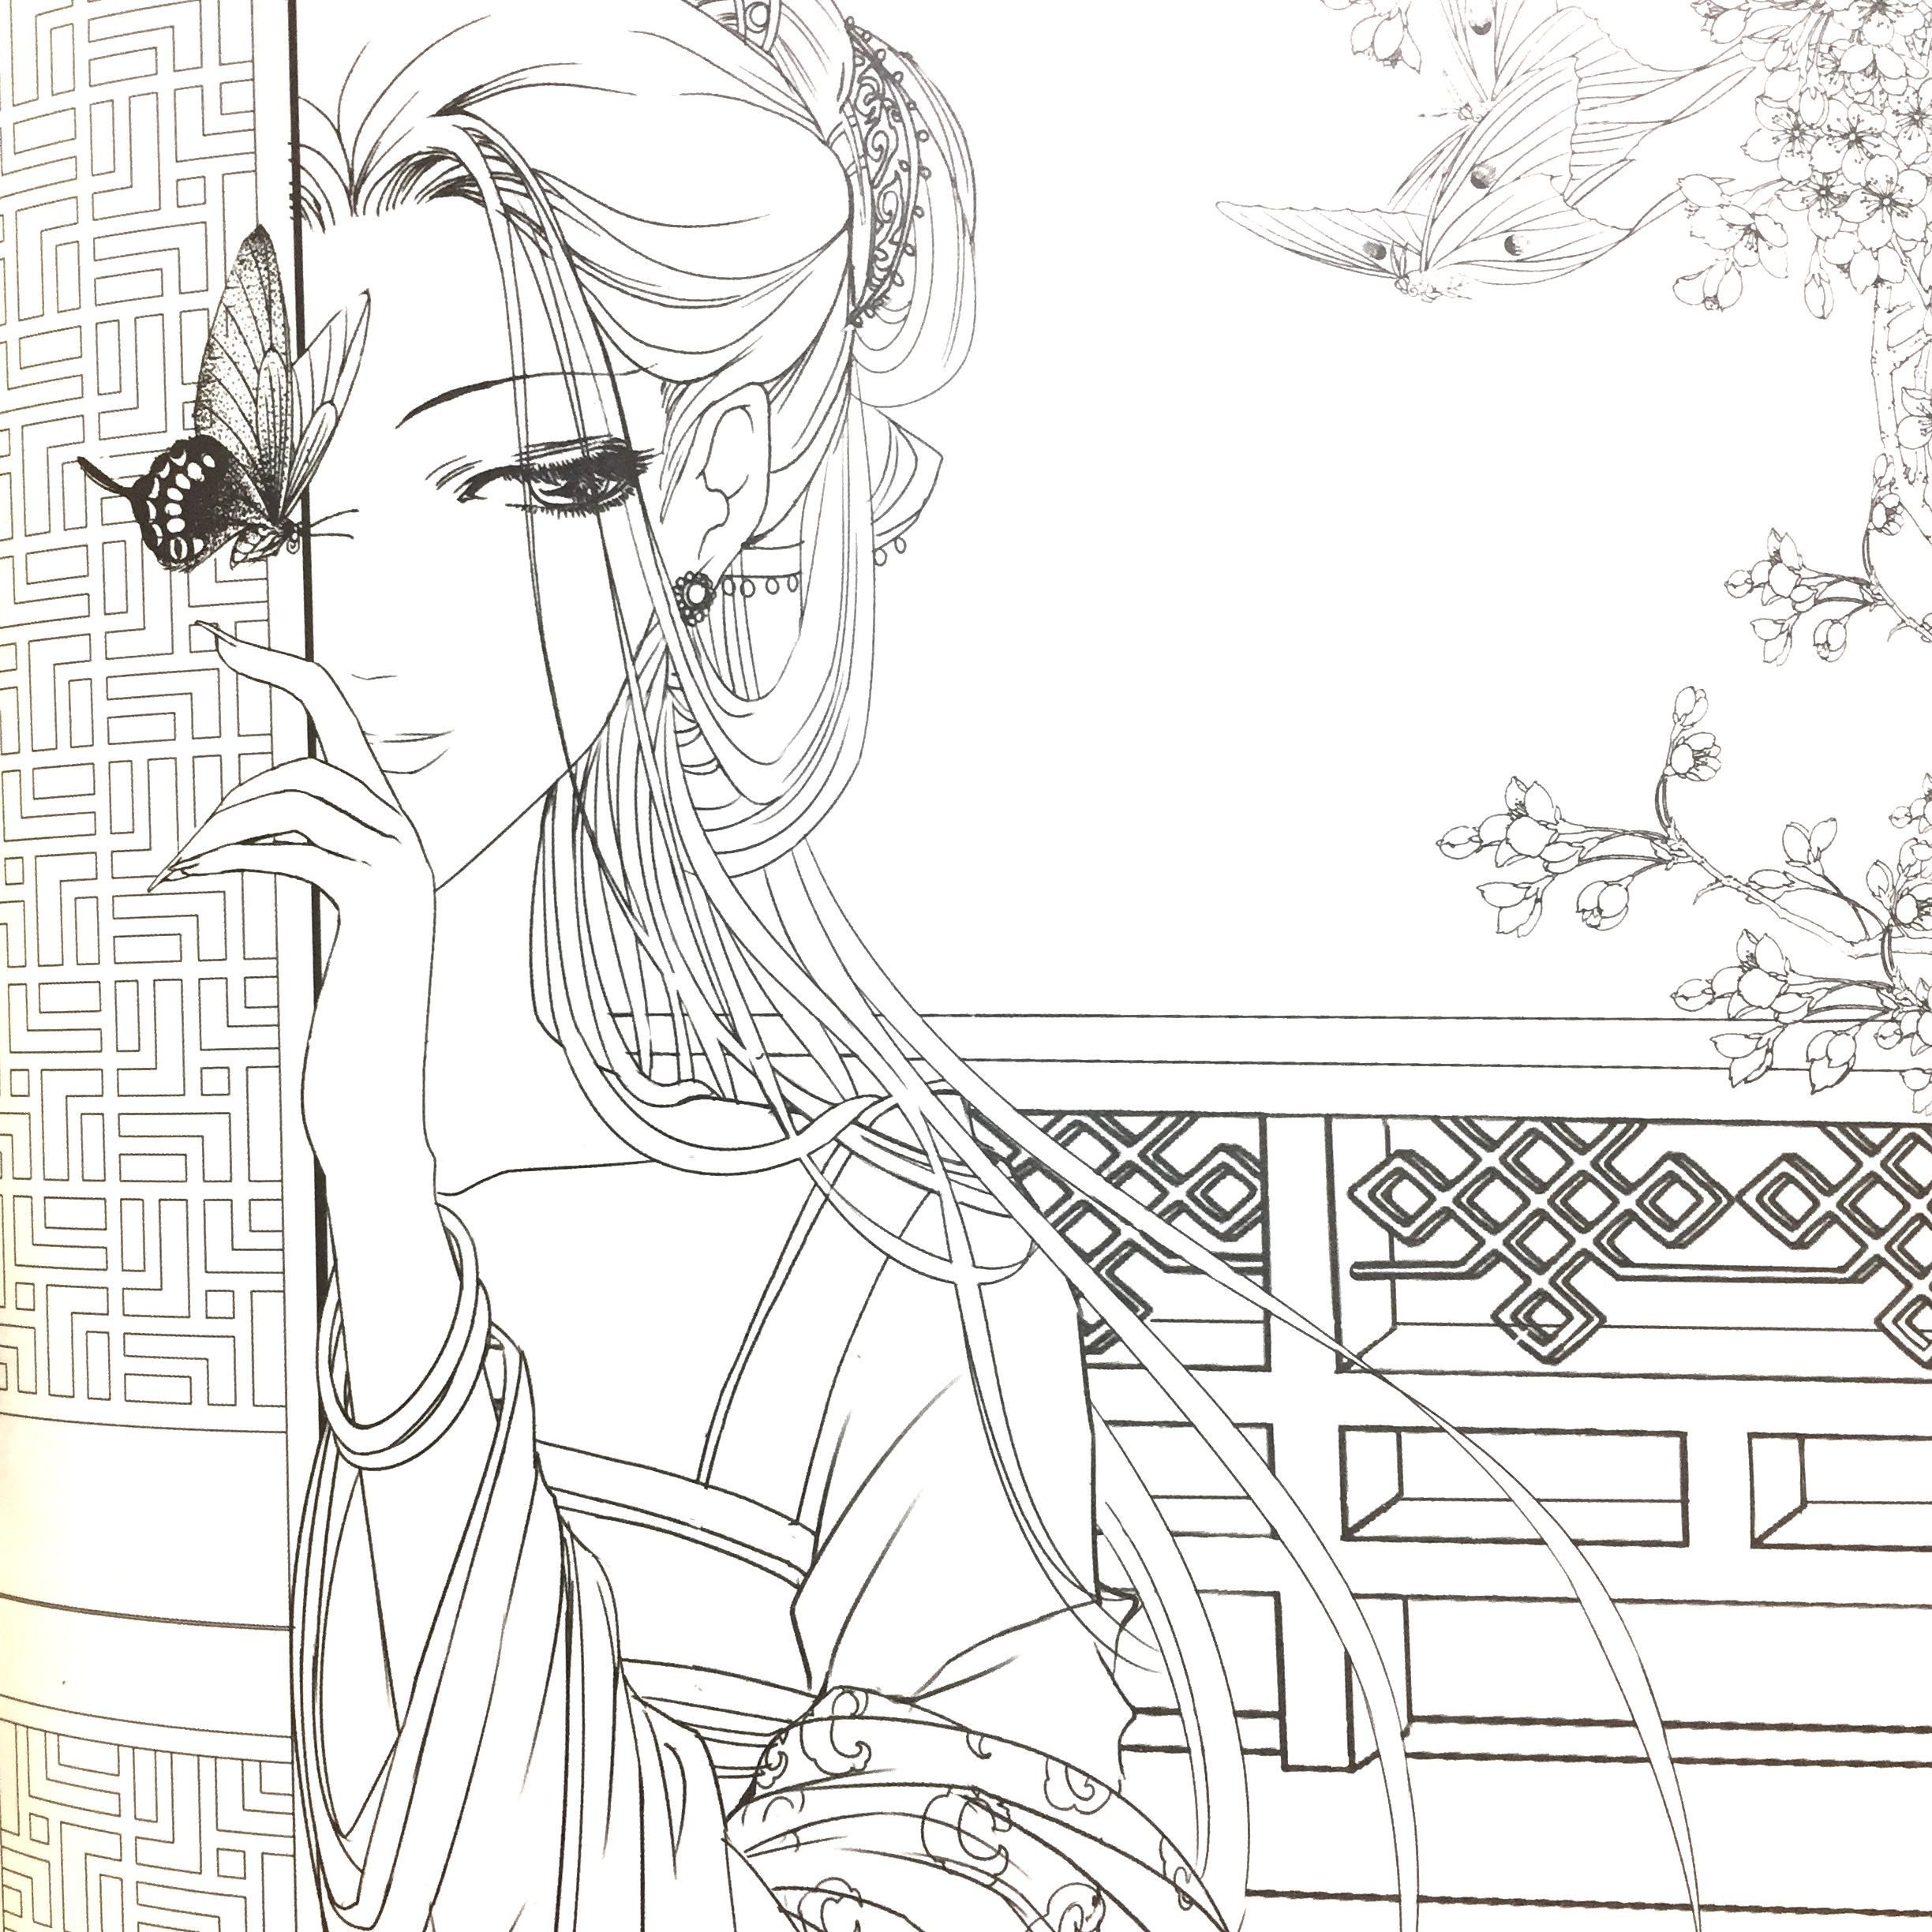 Pin By Kristi West On Anime Cute Coloring Pages Steampunk Coloring Cool Coloring Pages [ 2448 x 2448 Pixel ]